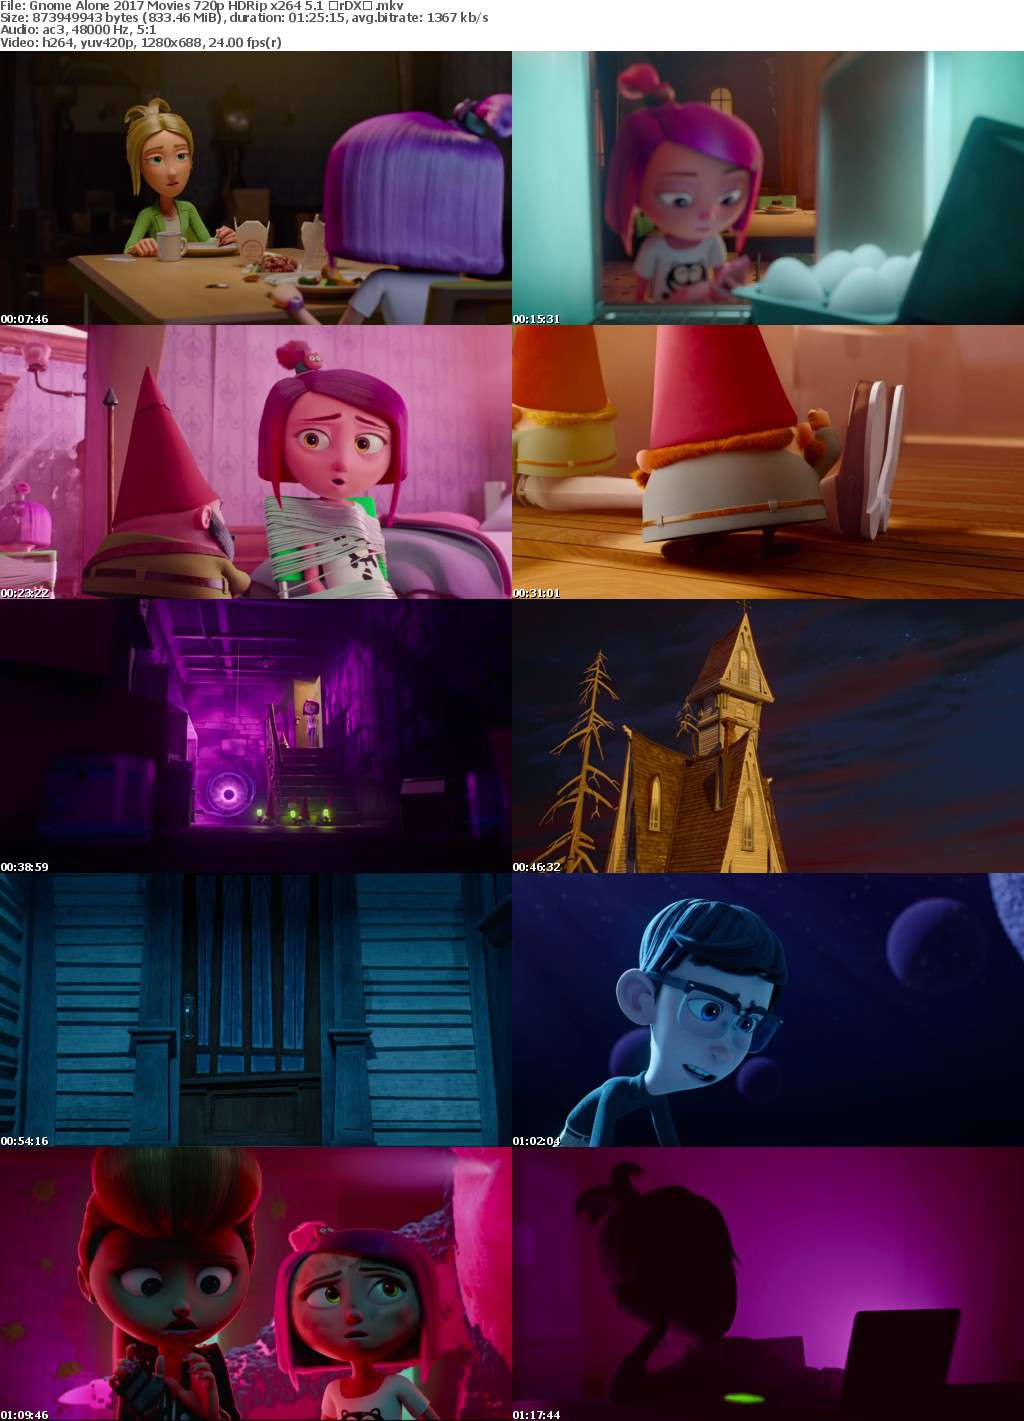 Gnome Alone 2017 Movies 720p HDRip x264 5 1 with Sample